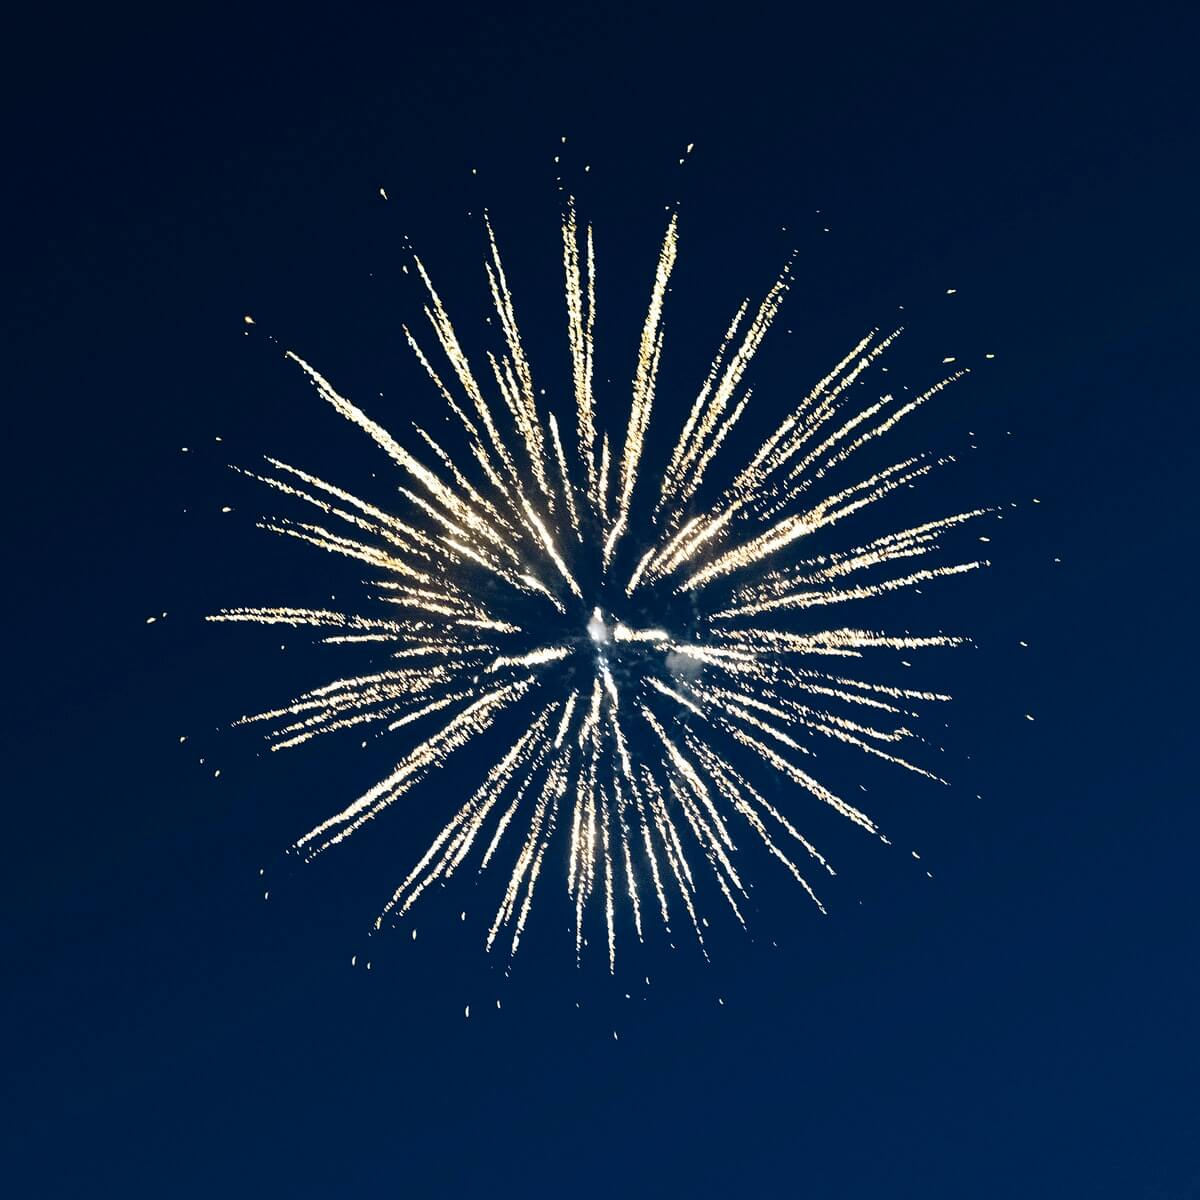 Photo of fireworks lighting up the sky